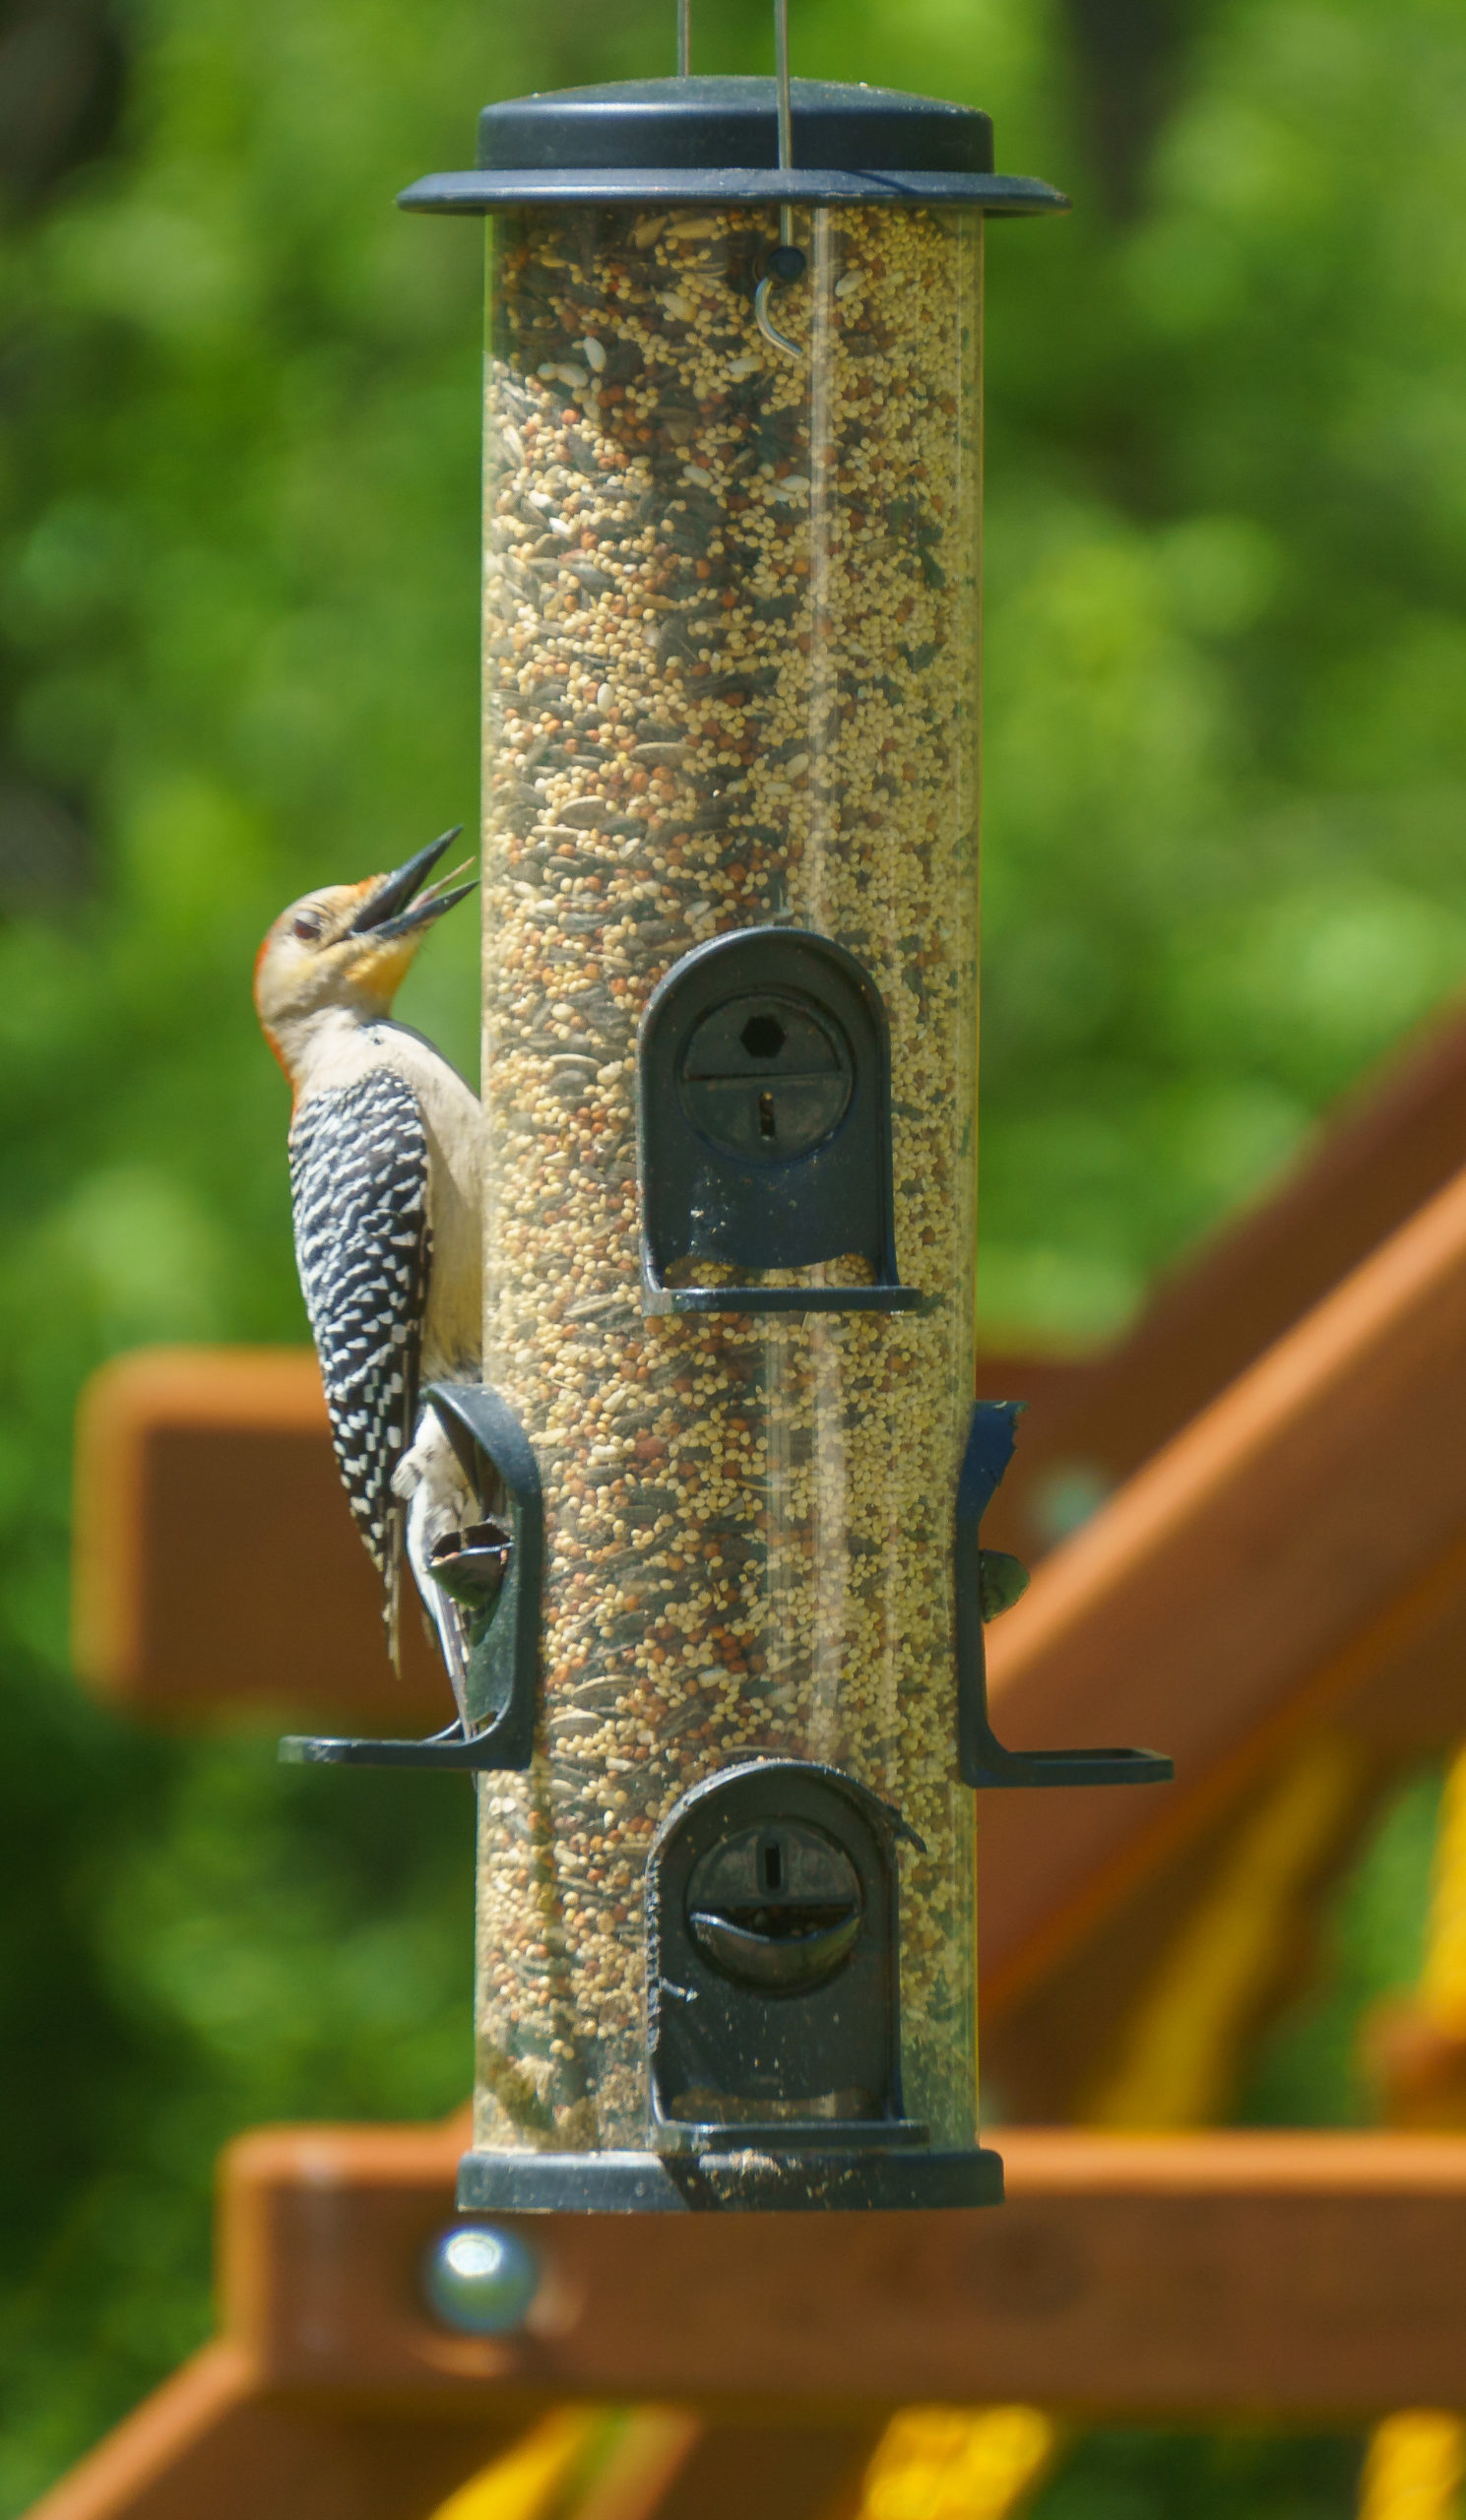 A woodpecker hanging on a feeder with its beak open, its tongue is visible